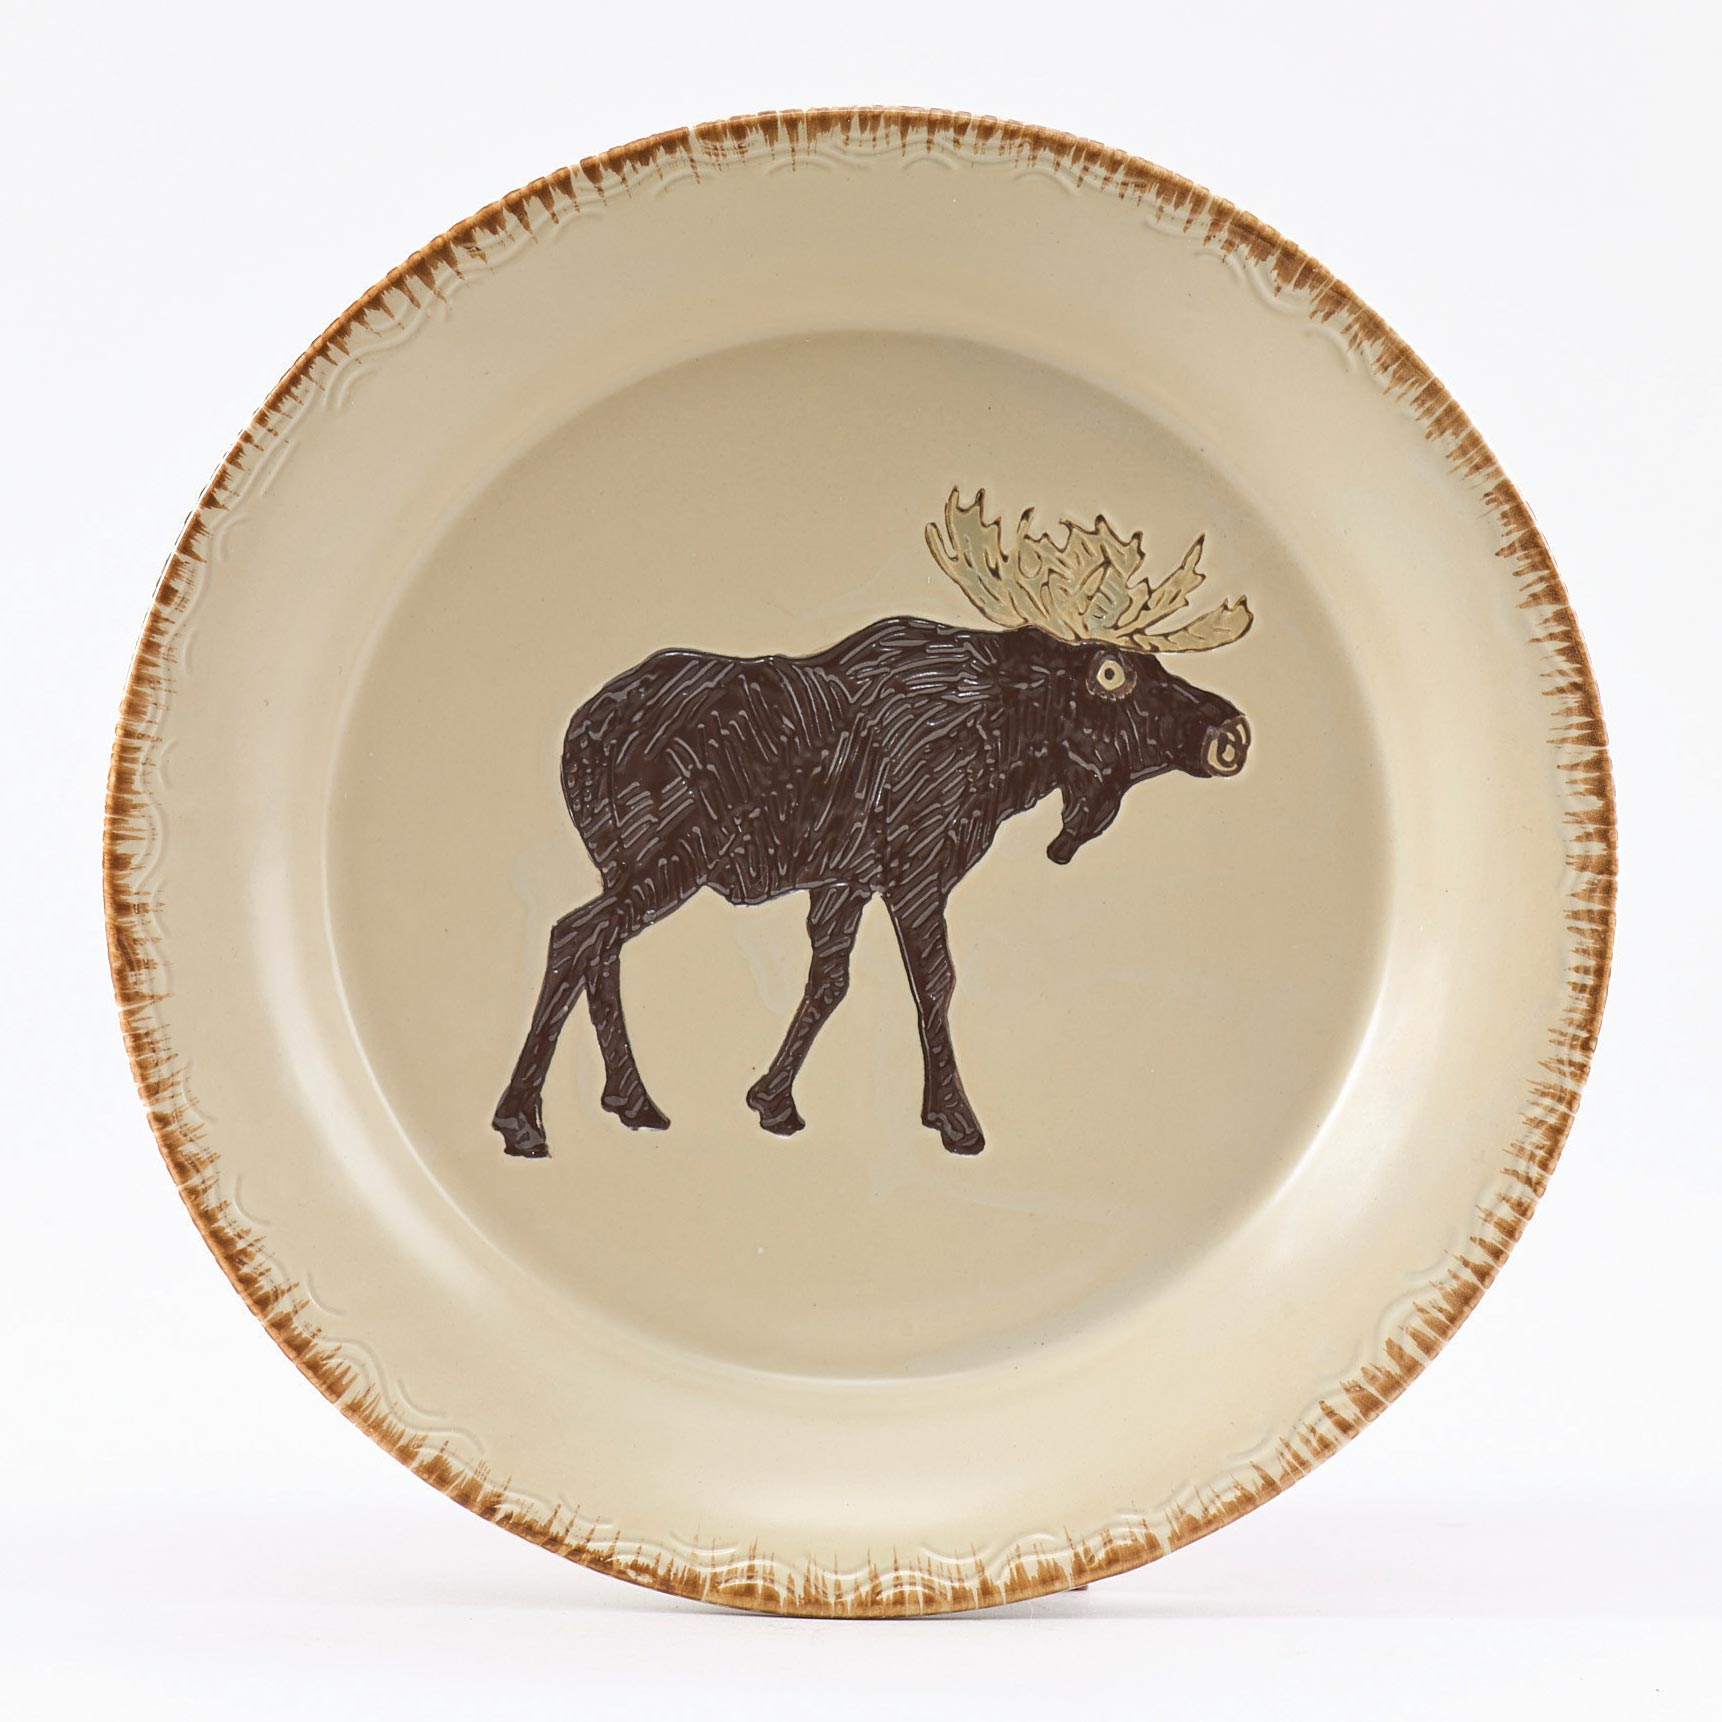 PKD-493-652M-Rustic-Retreat-Salad-Plate-Set-Moose-LRG